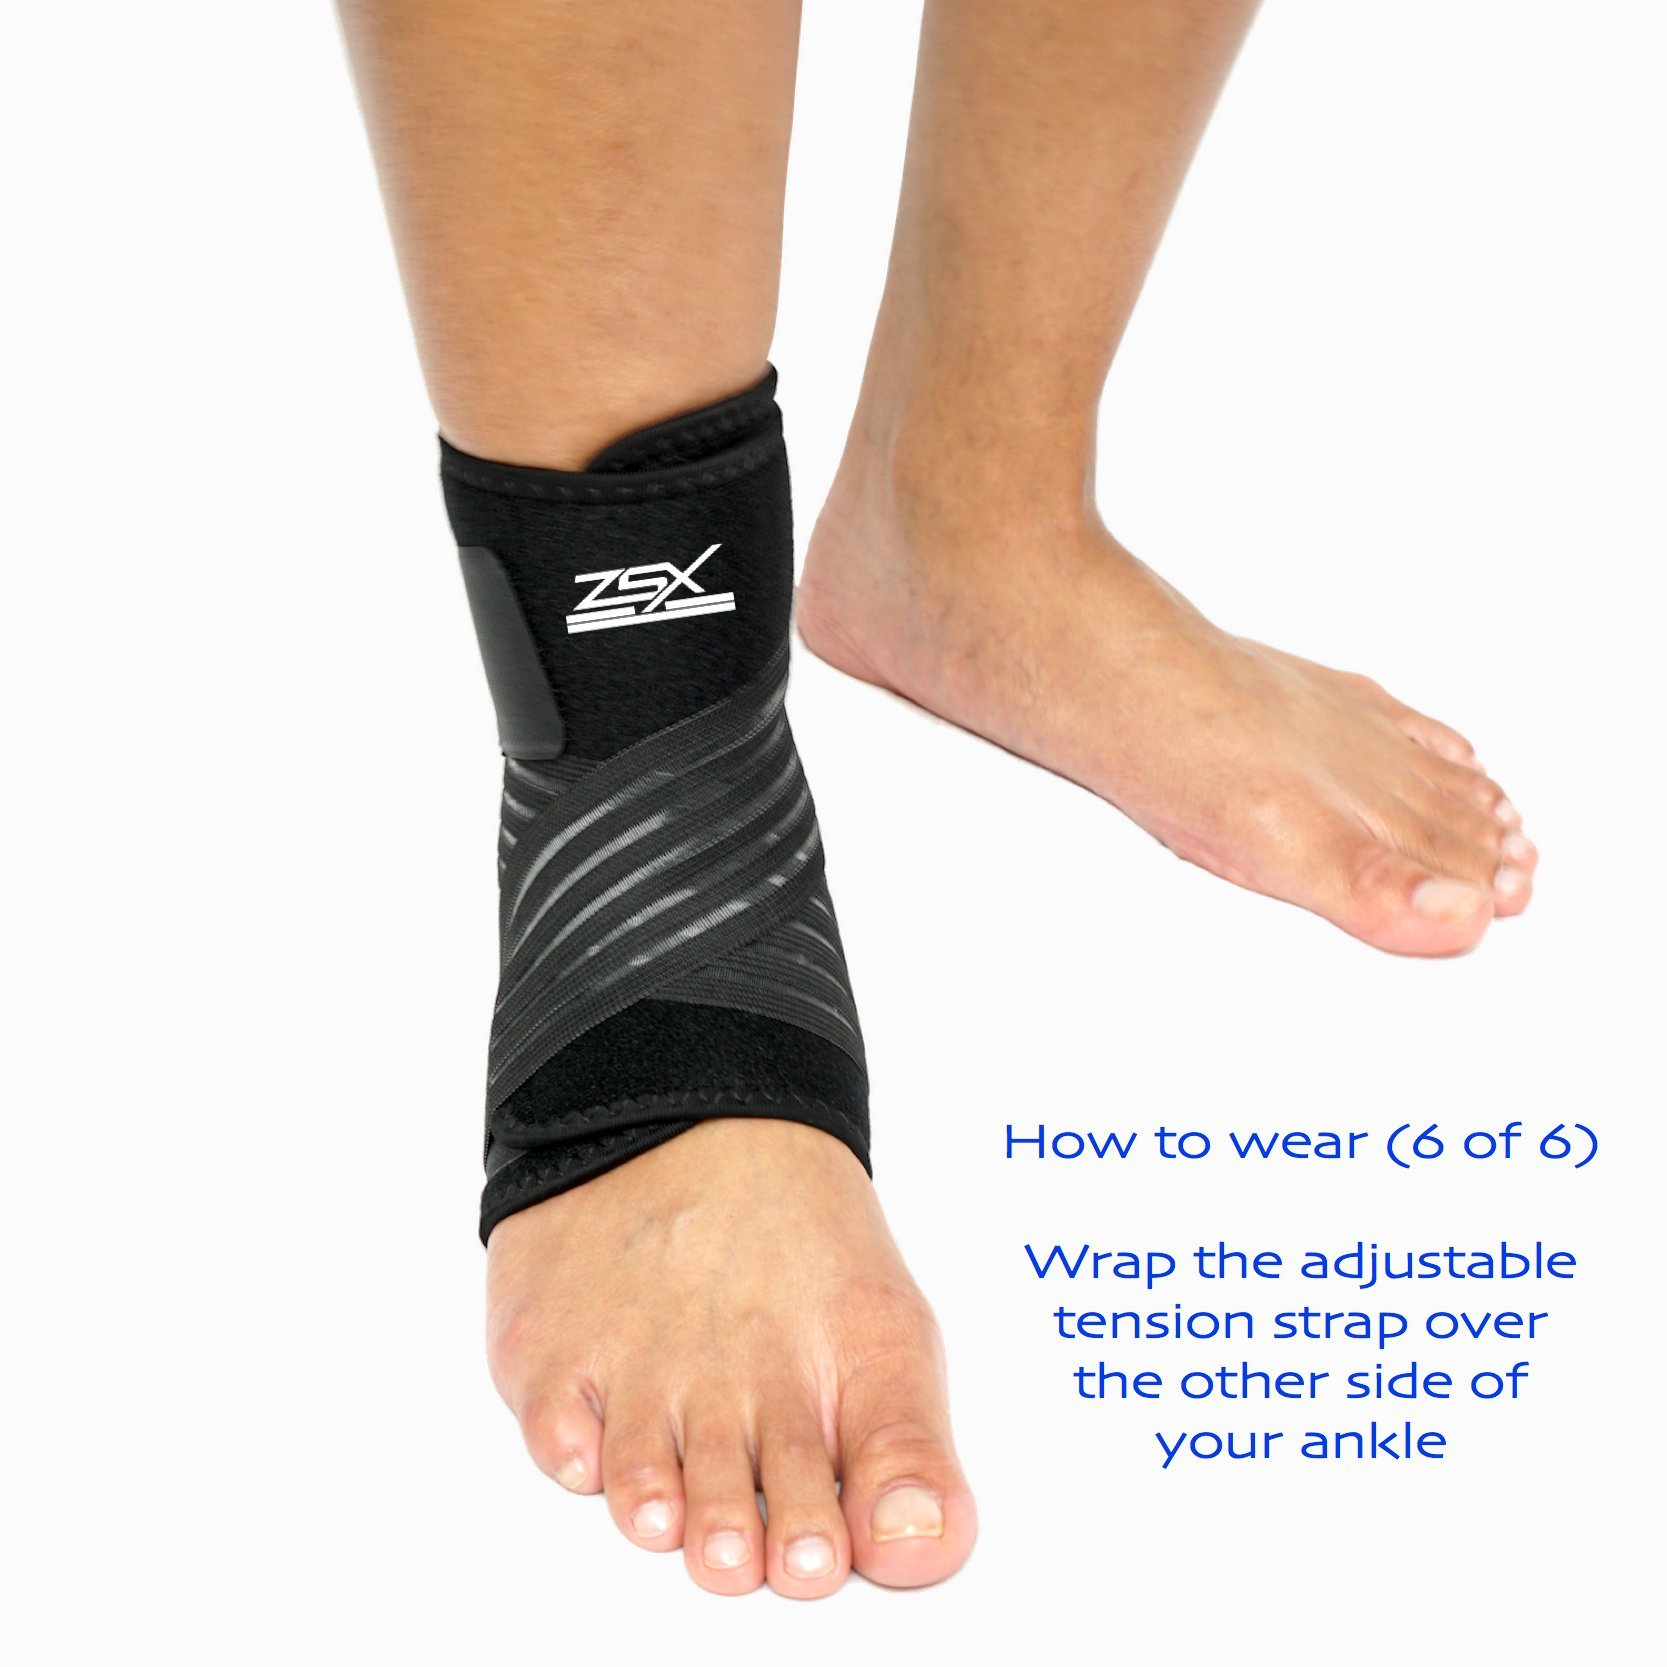 Ankle Brace (PAIR) with Bonus Straps, for Ankle Support, Plantar Fasciitis, or Swollen Ankles, One Size Fits Most, By ZSX SPORT (Foot Size - Reg) by ZSX (Image #8)